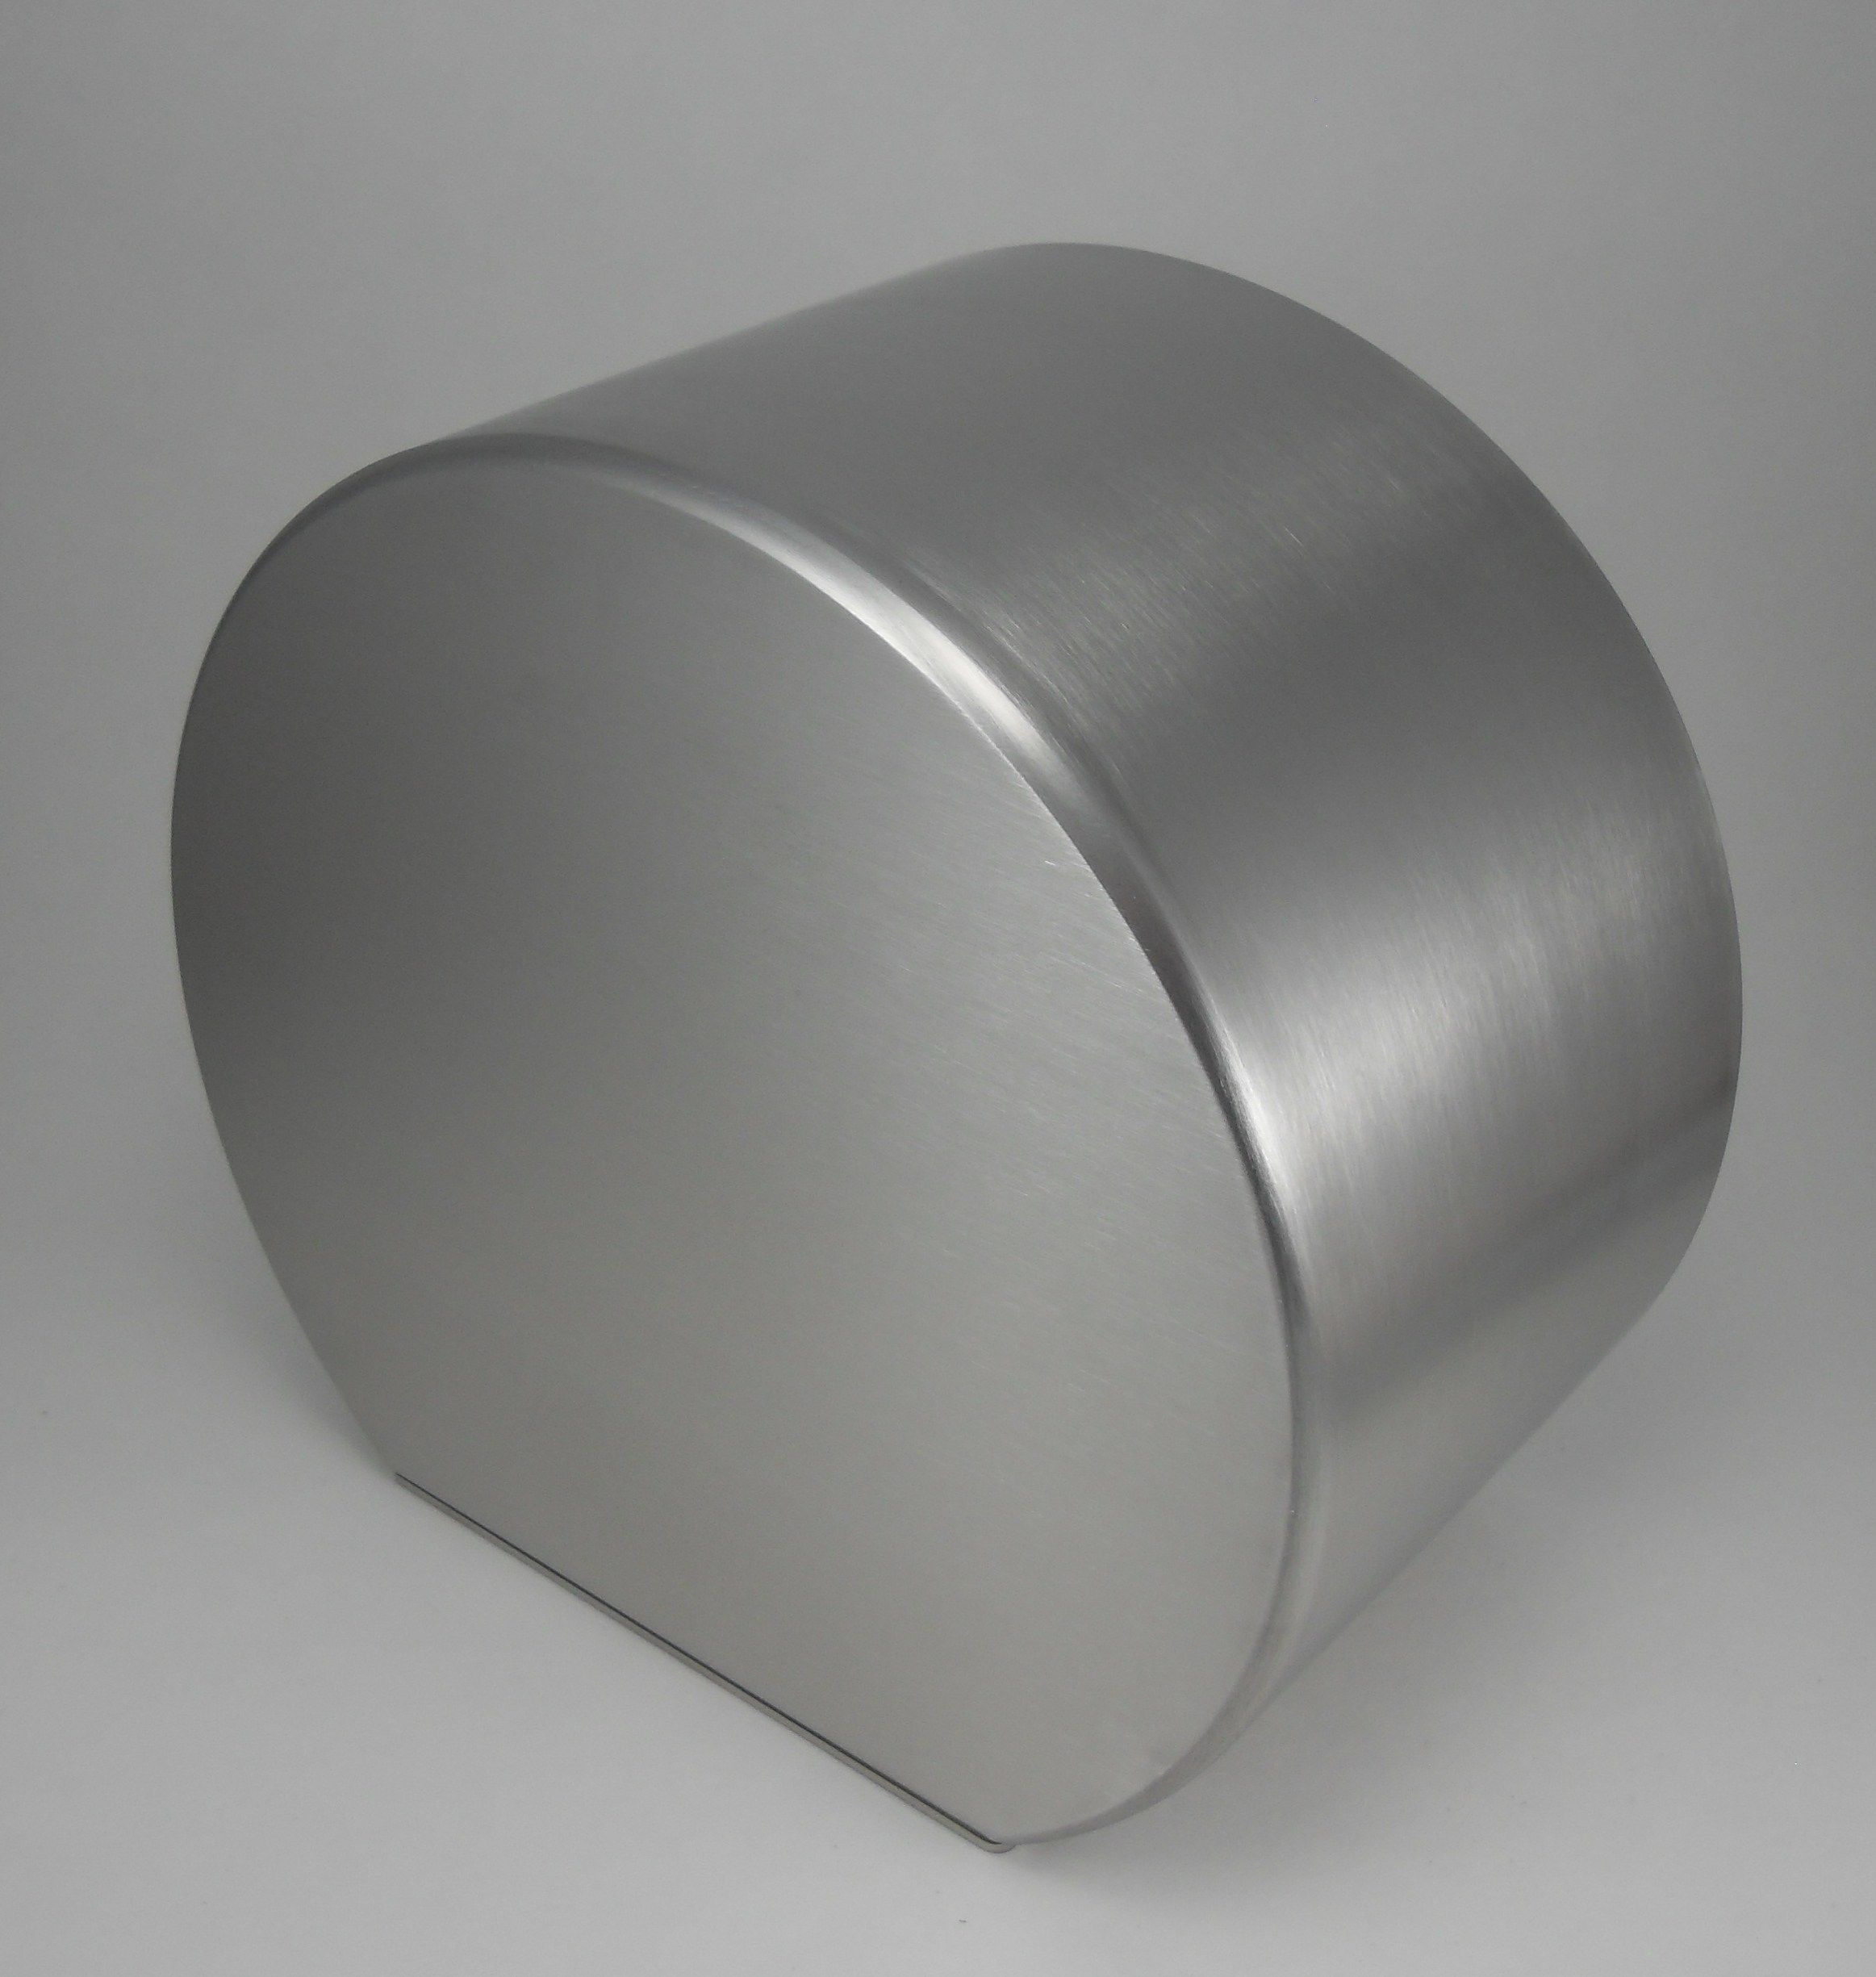 Decorative Cremation Urns Magnificent Cremation Urns Stainless Steel Usa Made Fits In Lovingly With Design Inspiration